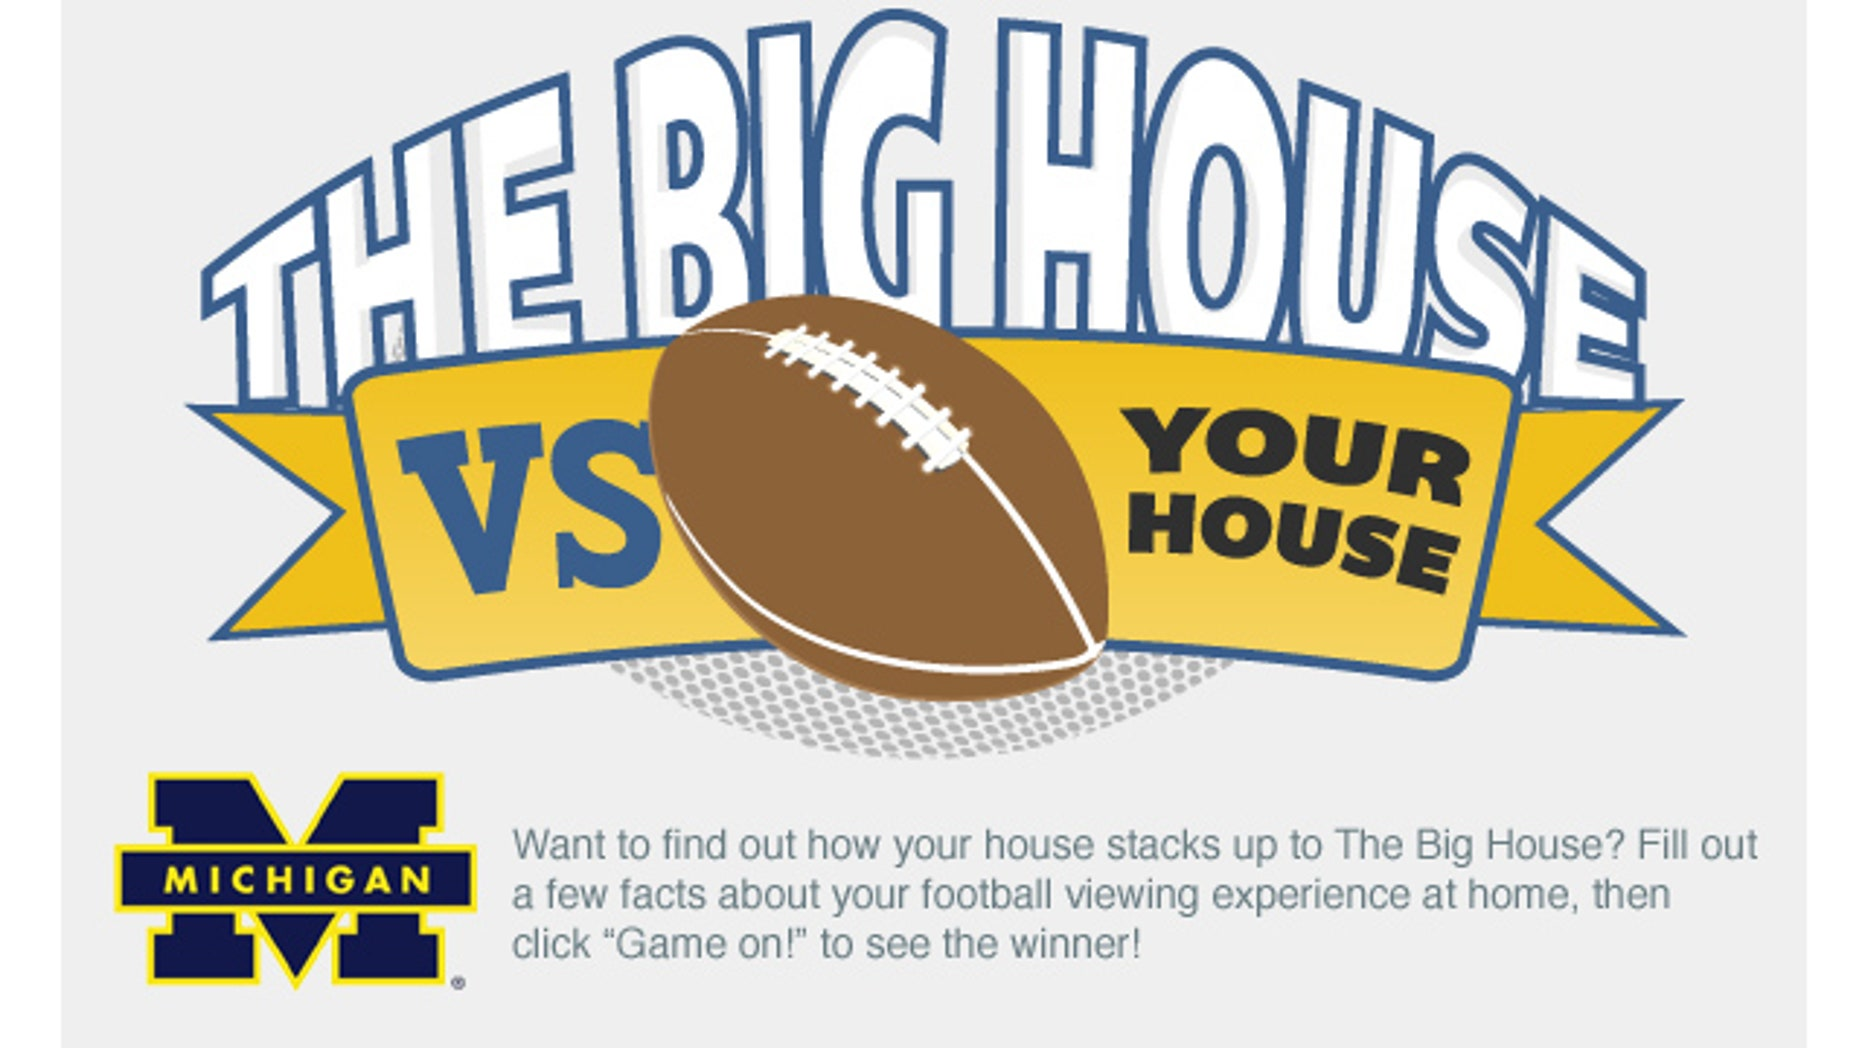 Visit Movoto.com to see how your house stacks up to The Big House.